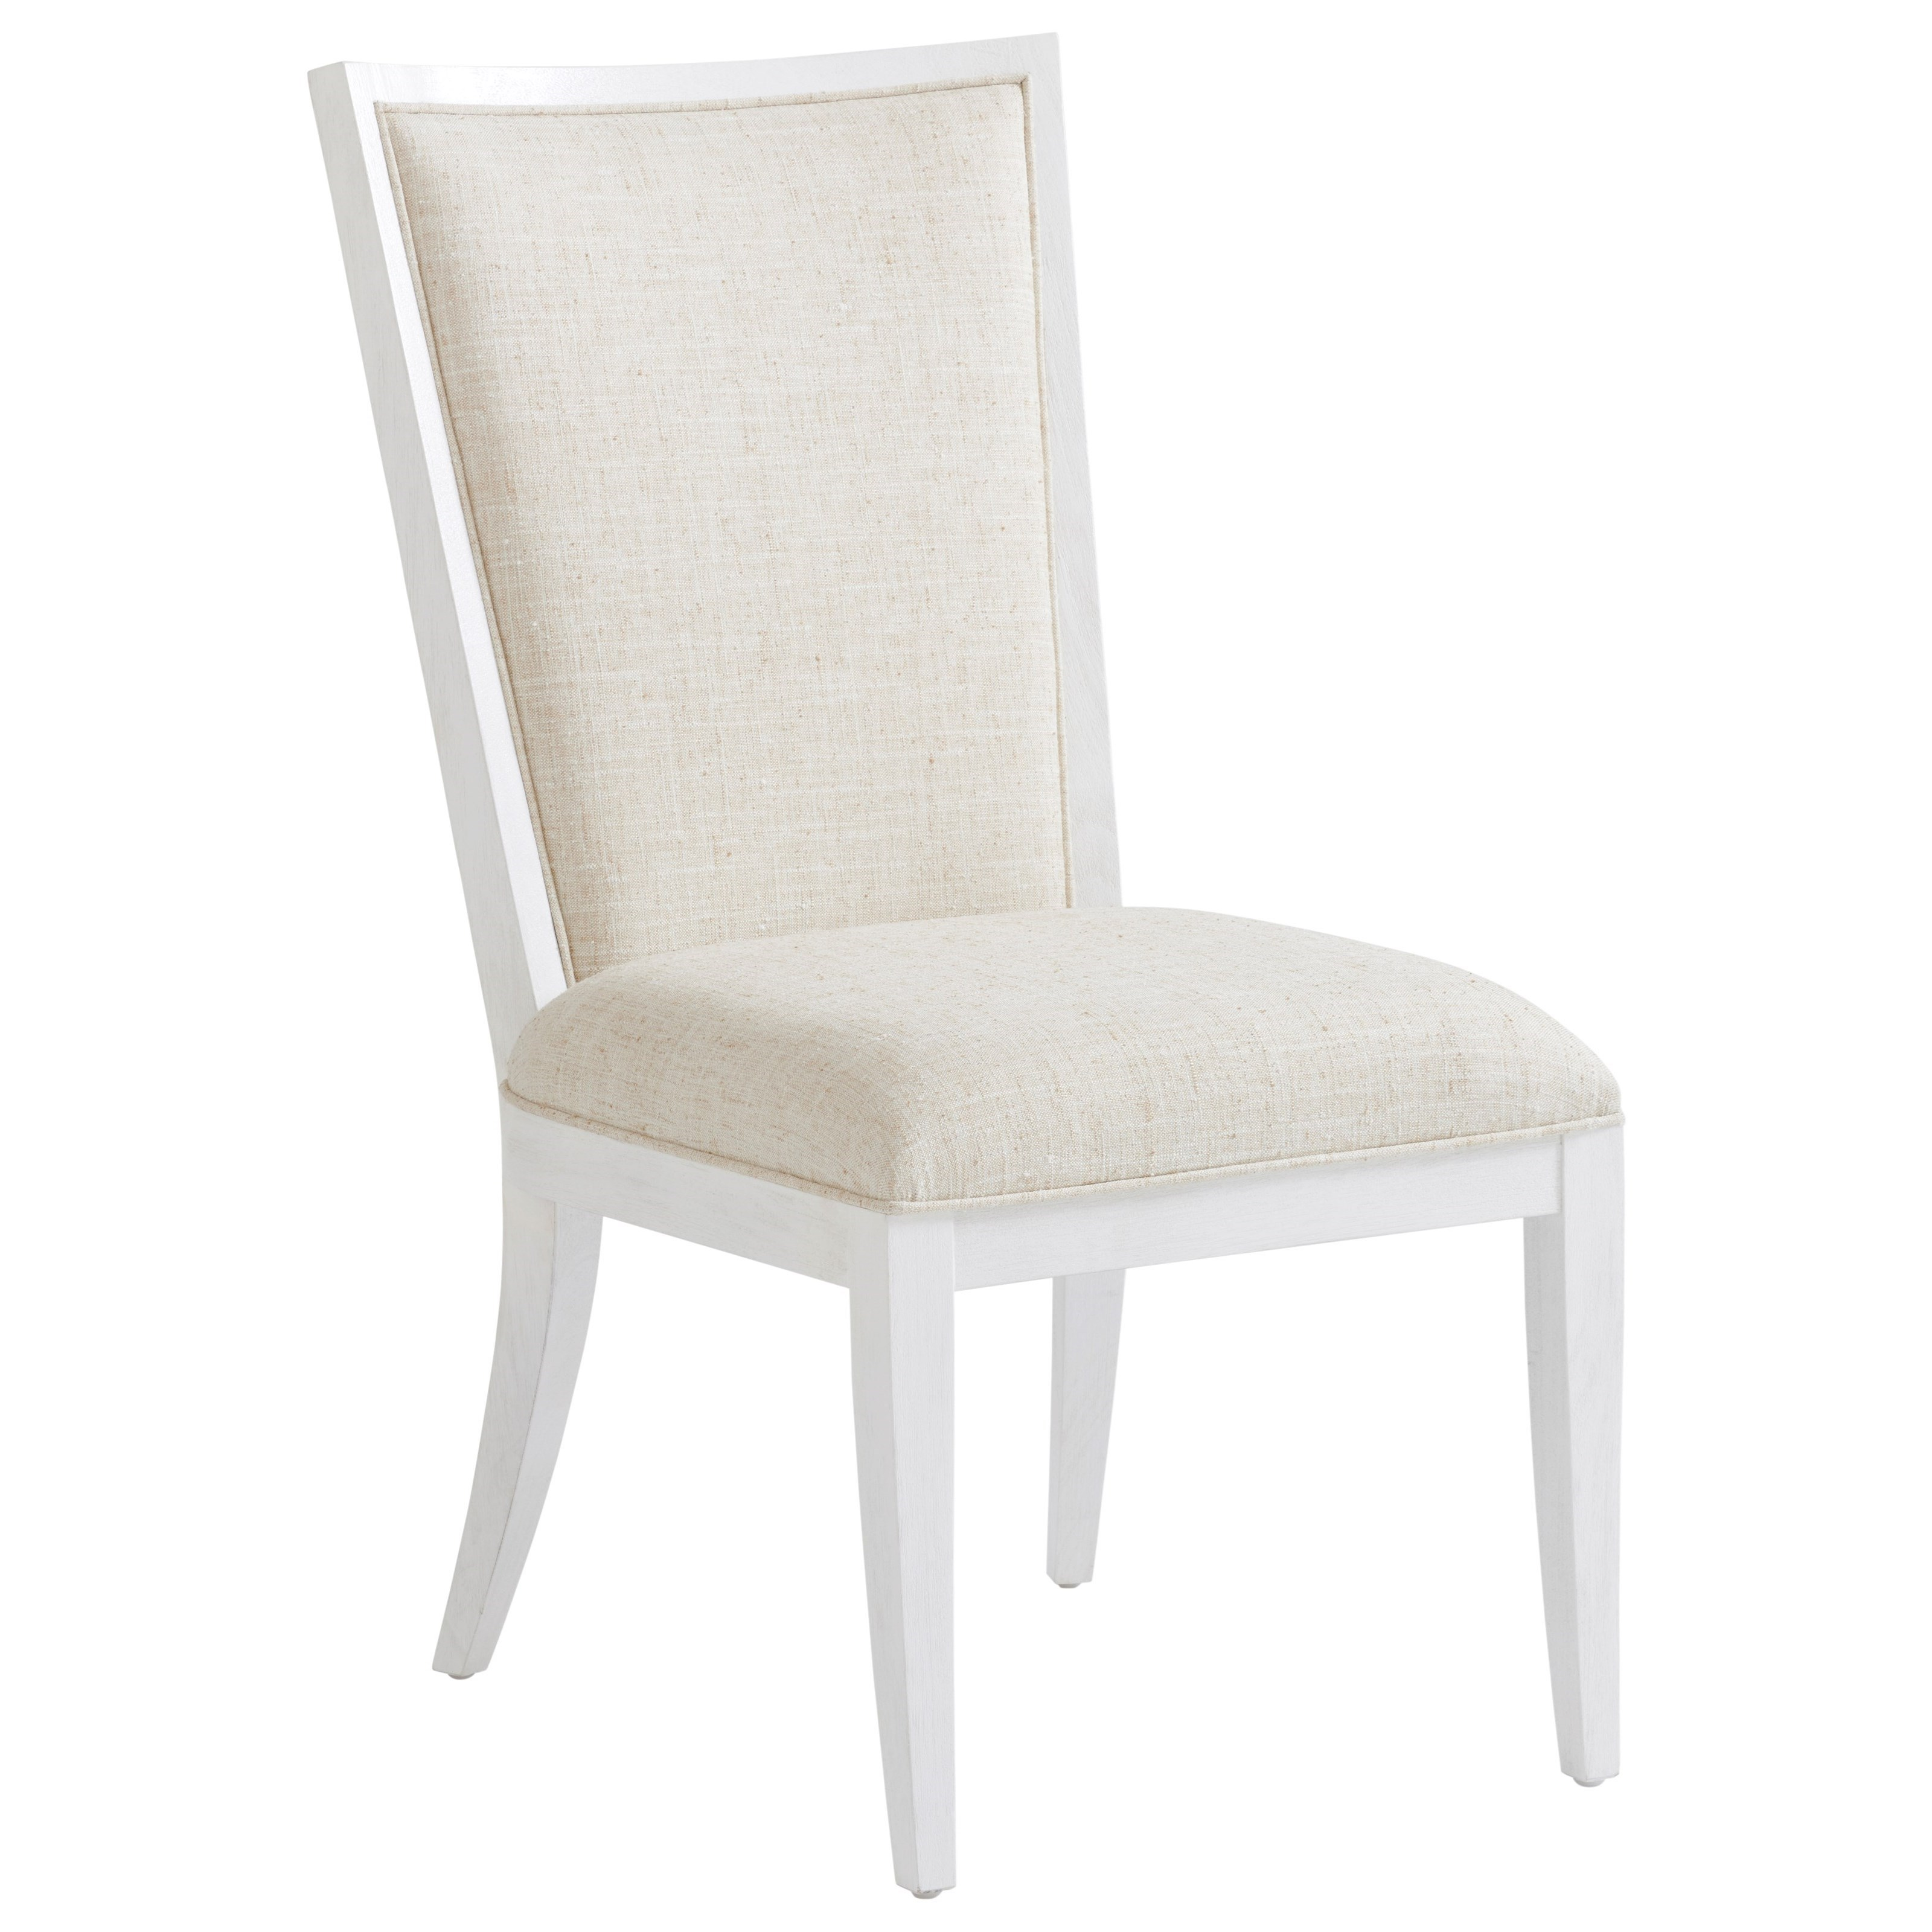 Ocean Breeze Sea Winds Upholstered Side Chair by Tommy Bahama Home at Baer's Furniture